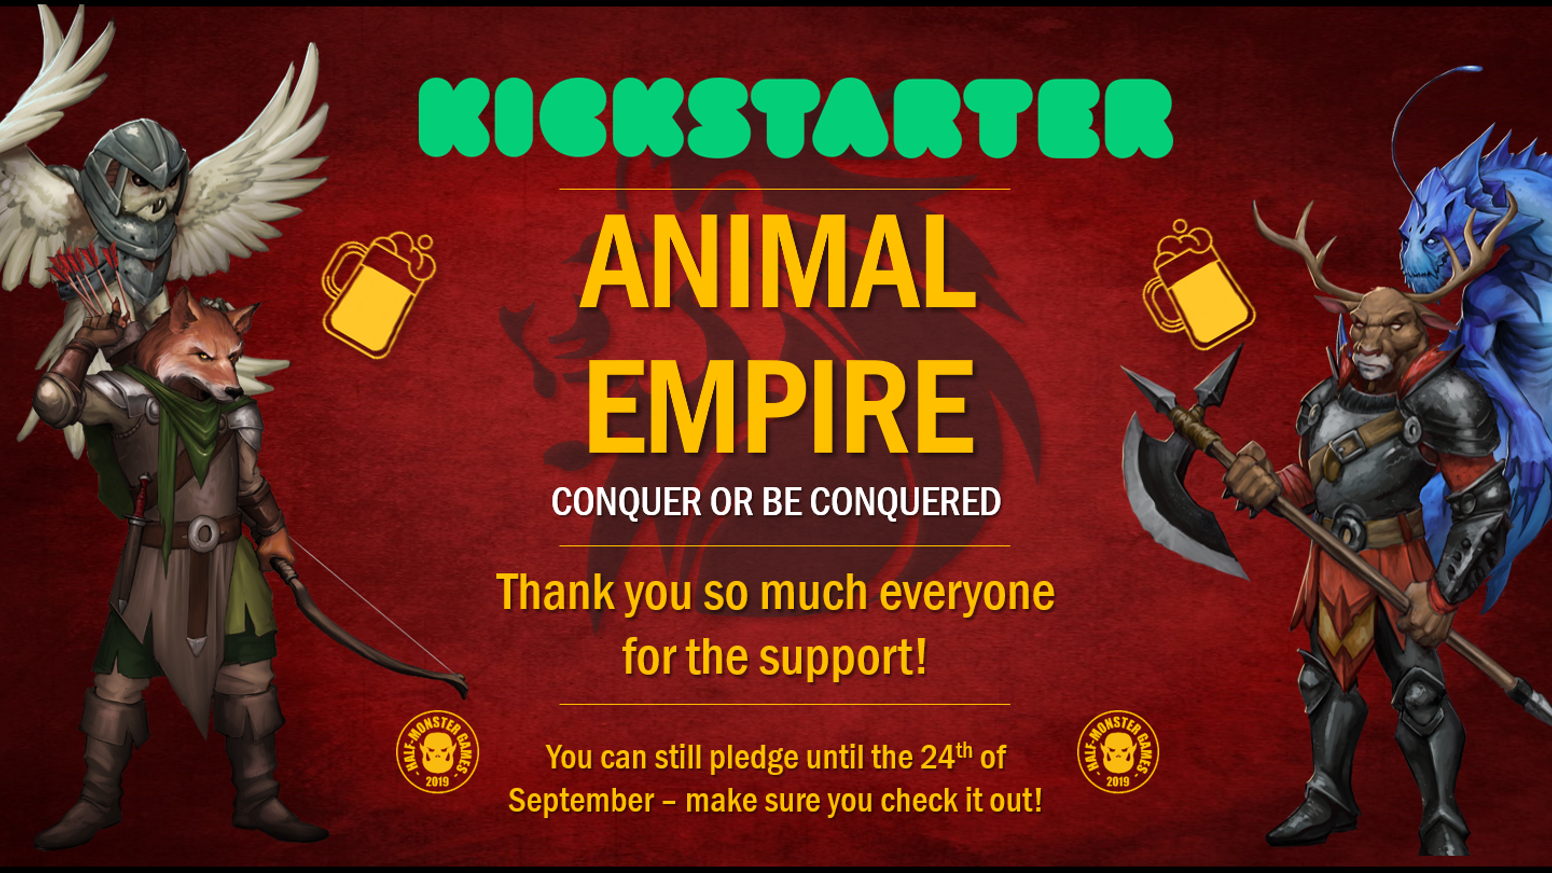 Animal Empire, an innovative card game where you build an Empire by capturing your friends as Vassals to team up against everyone else!